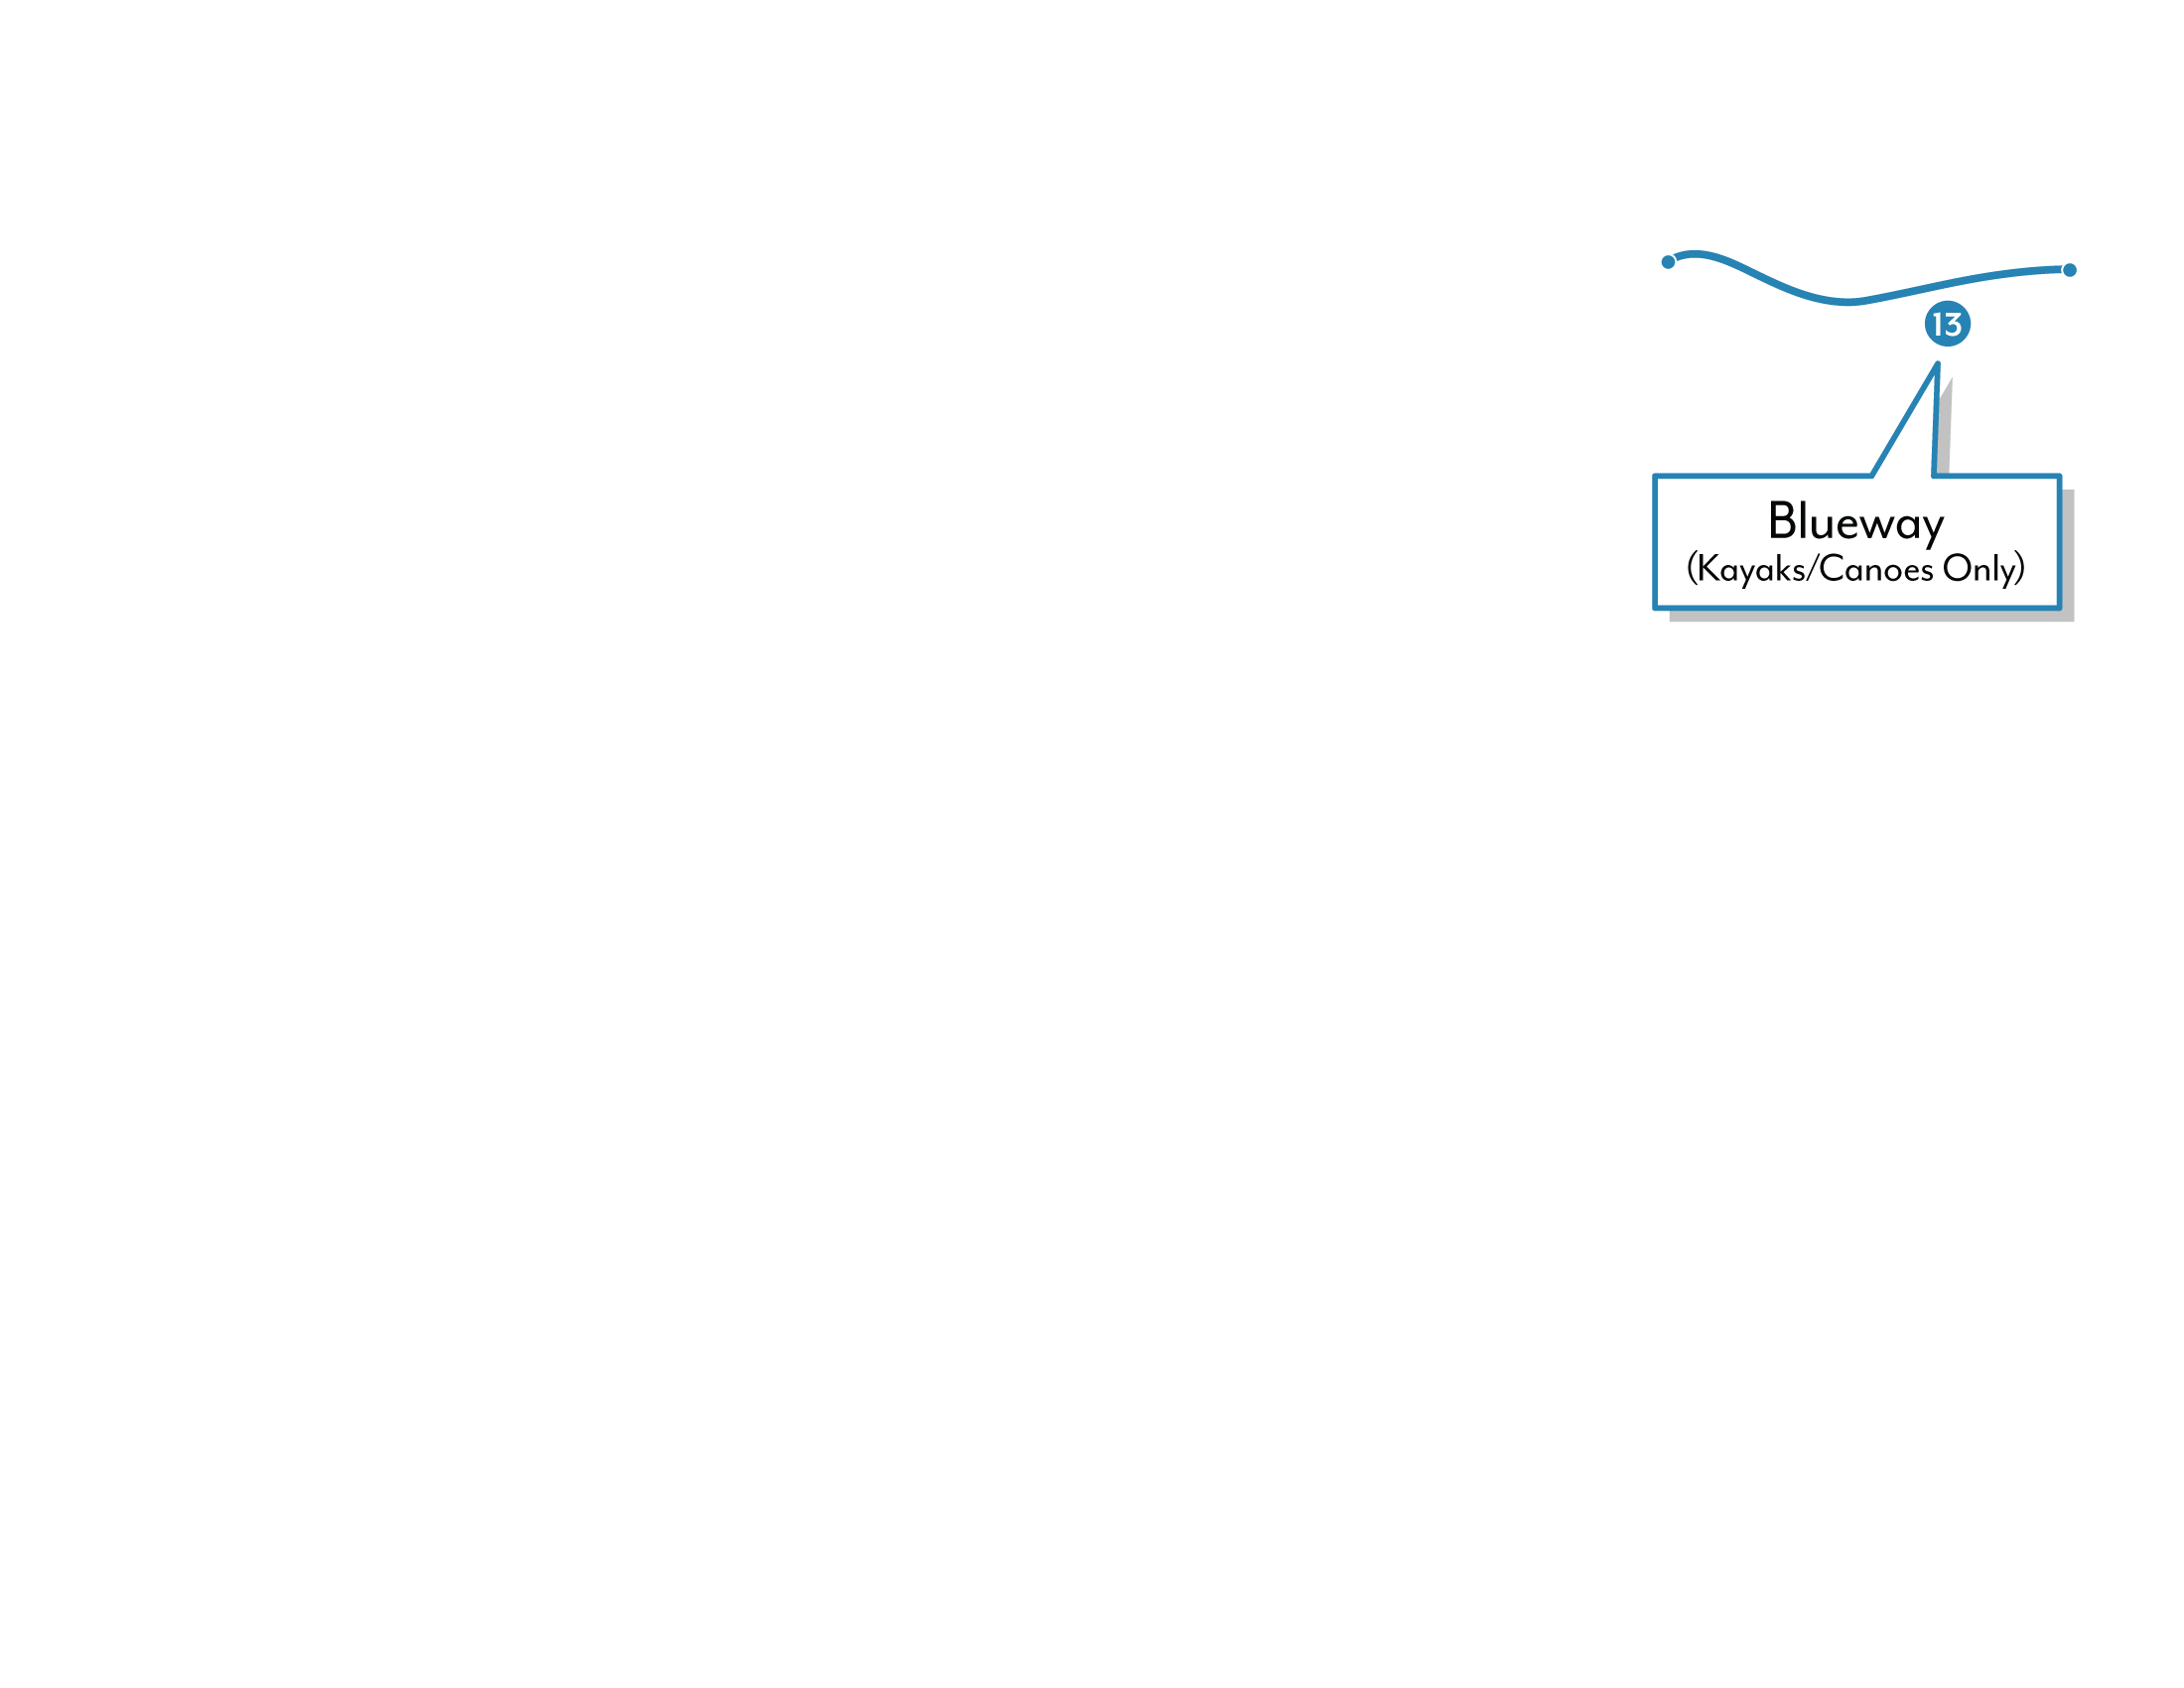 Shearwater graphic depicting the Blueway